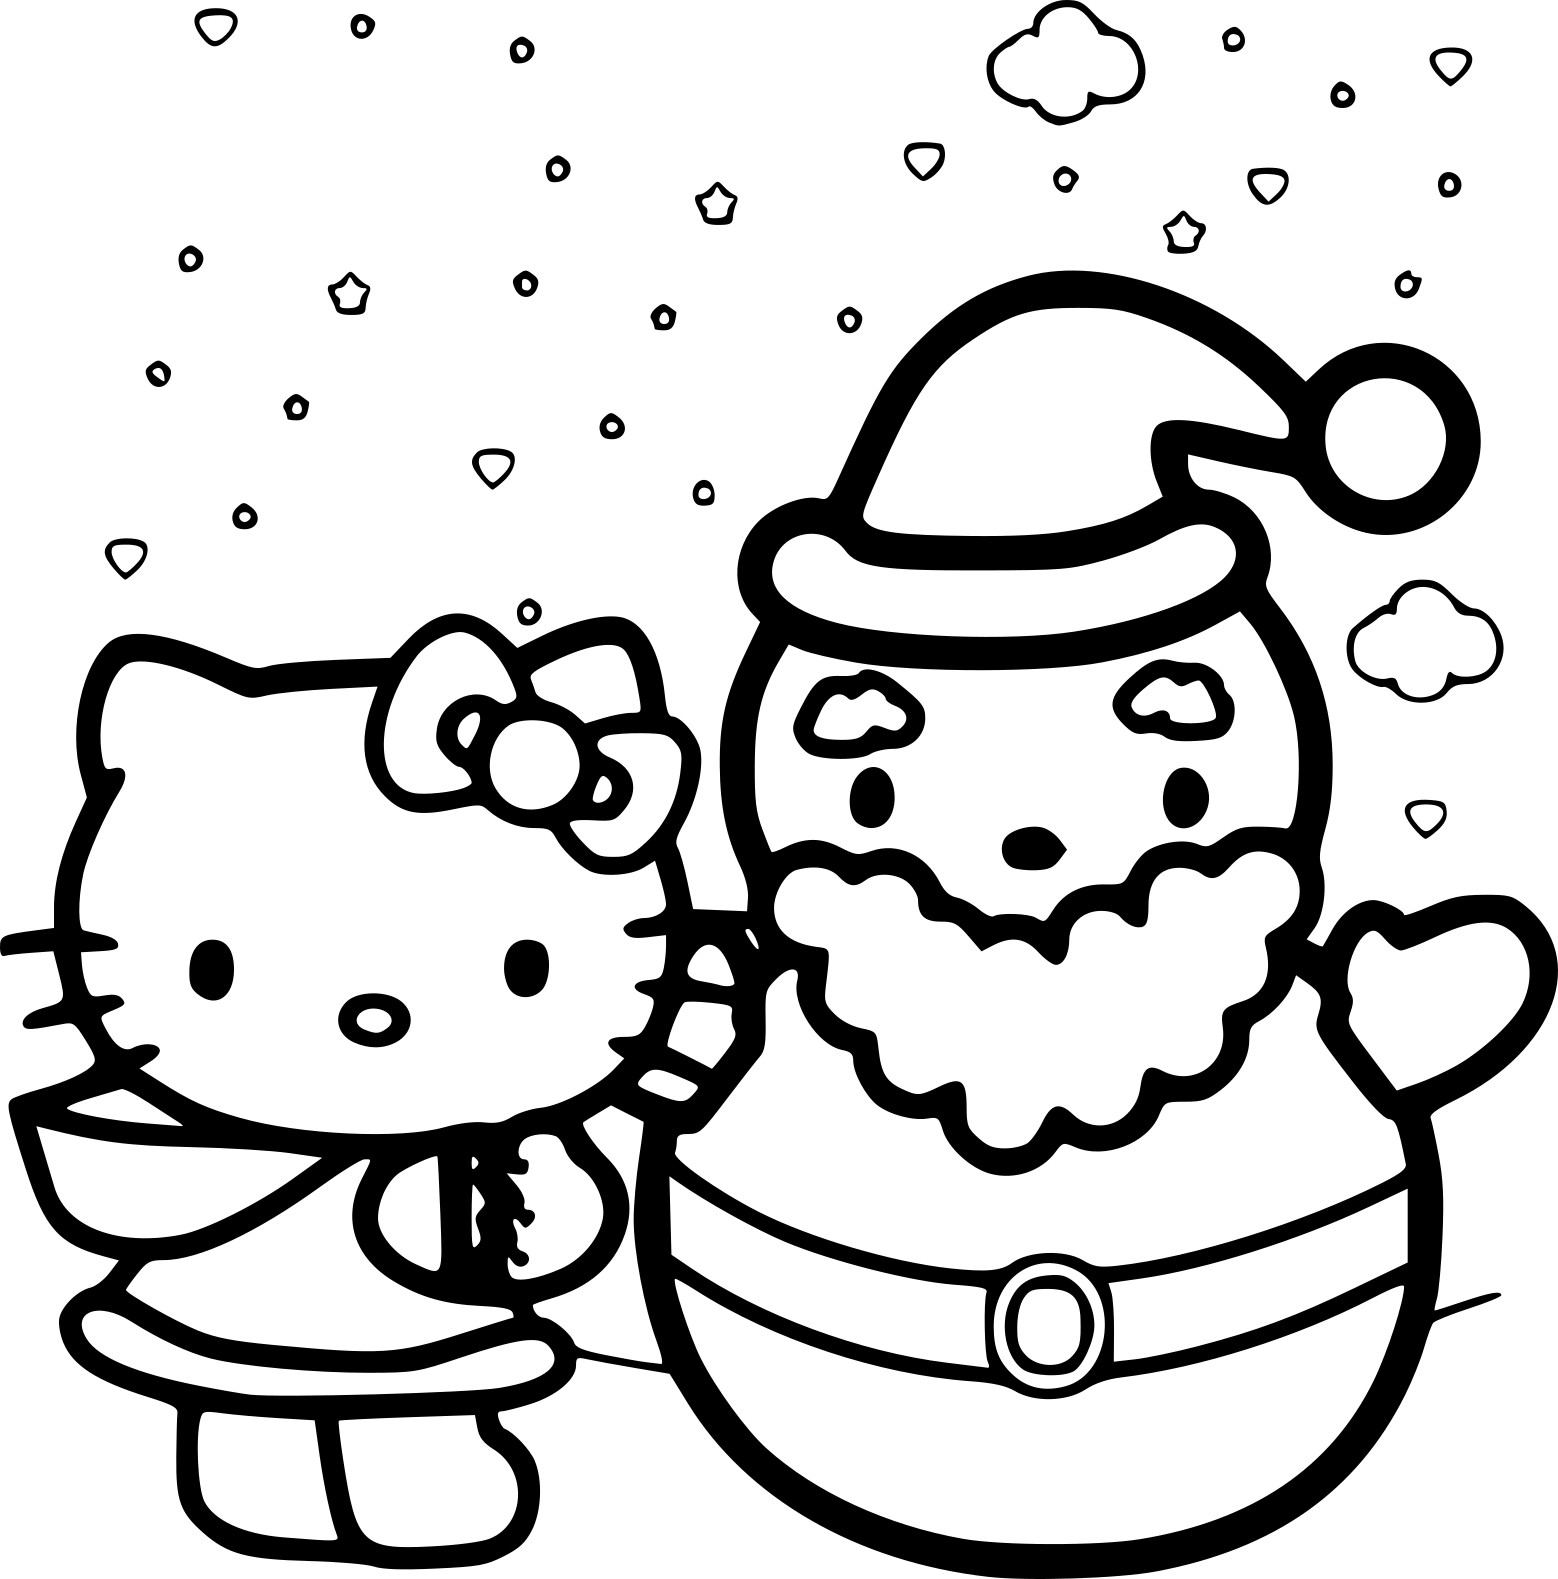 Coloriage hello kitty no l imprimer - Coloriage hello kitty gratuit ...